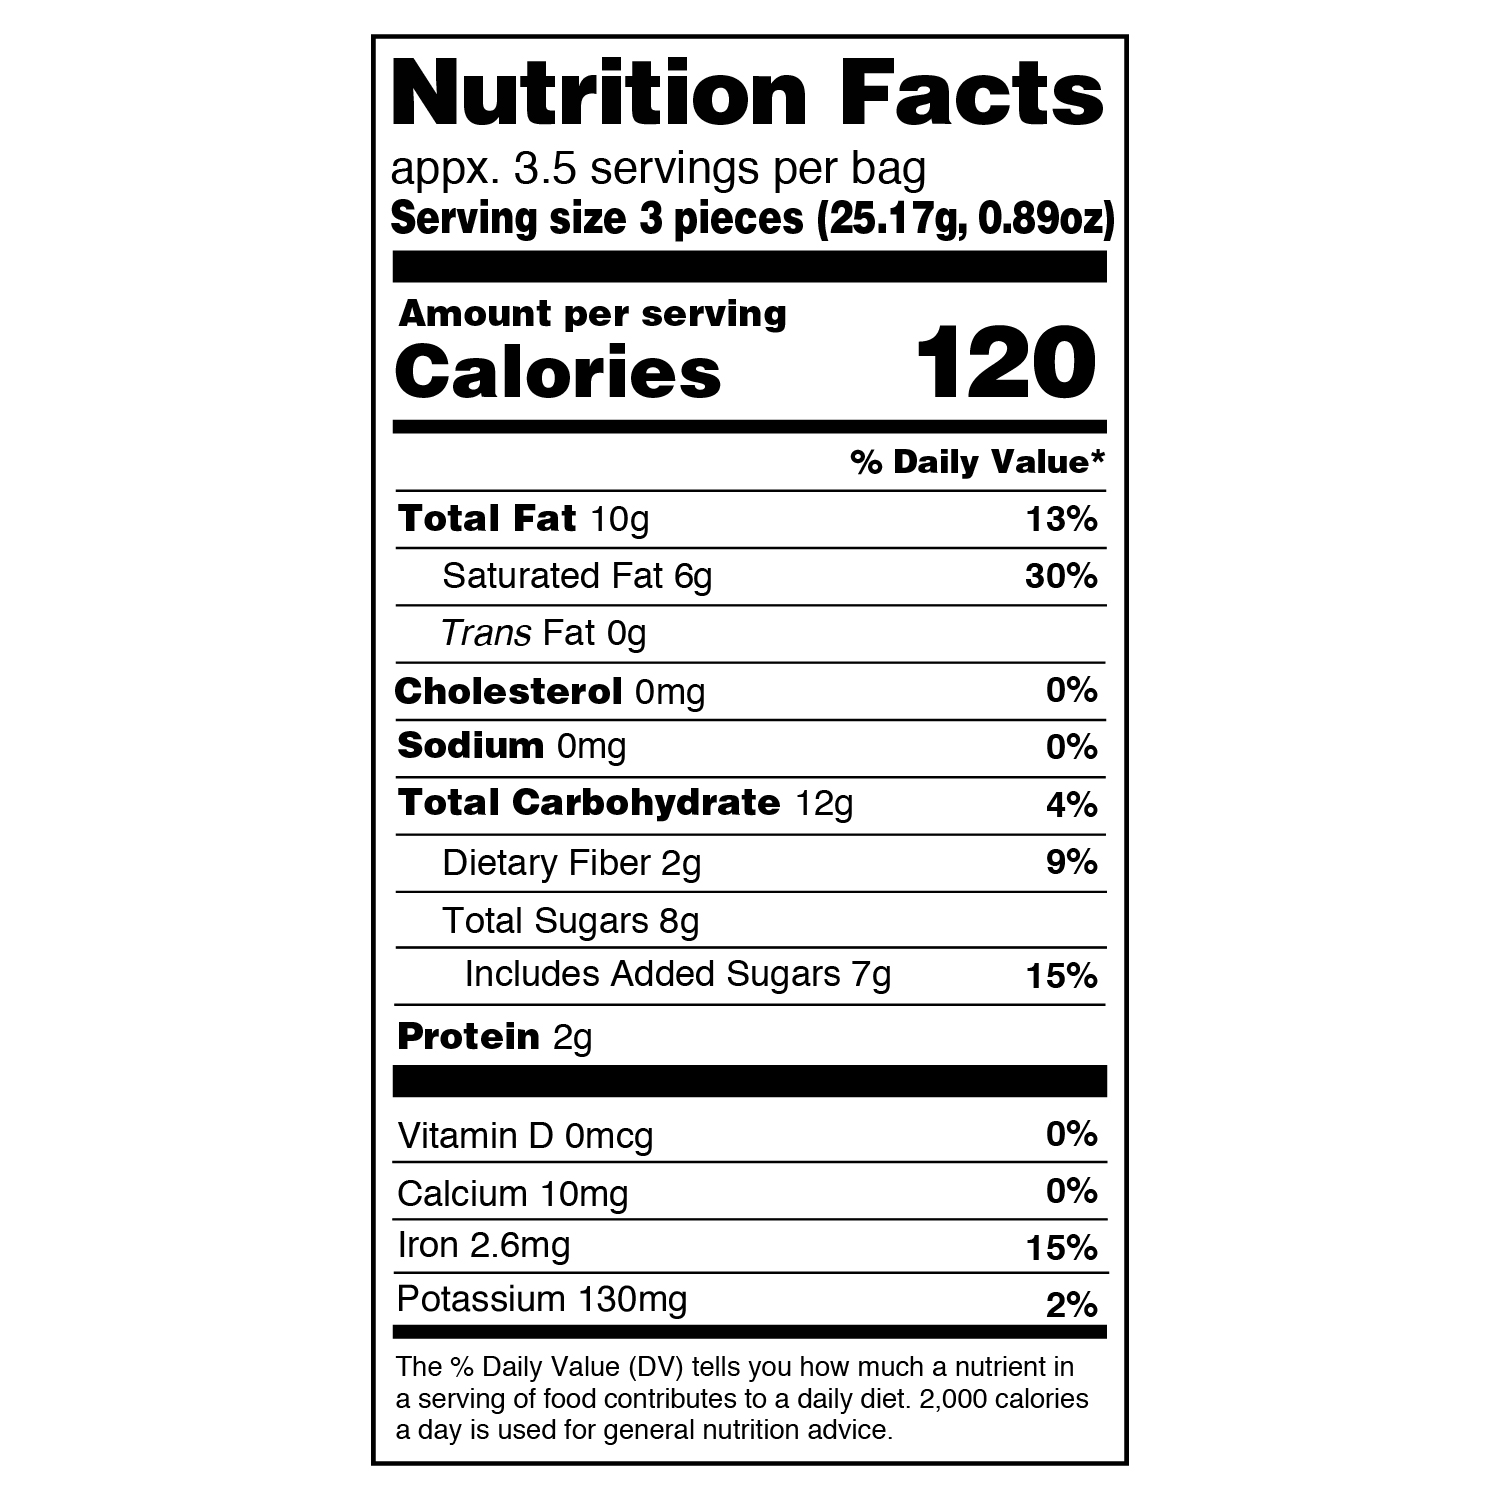 wild blueberry 3.26 oz nutritional information